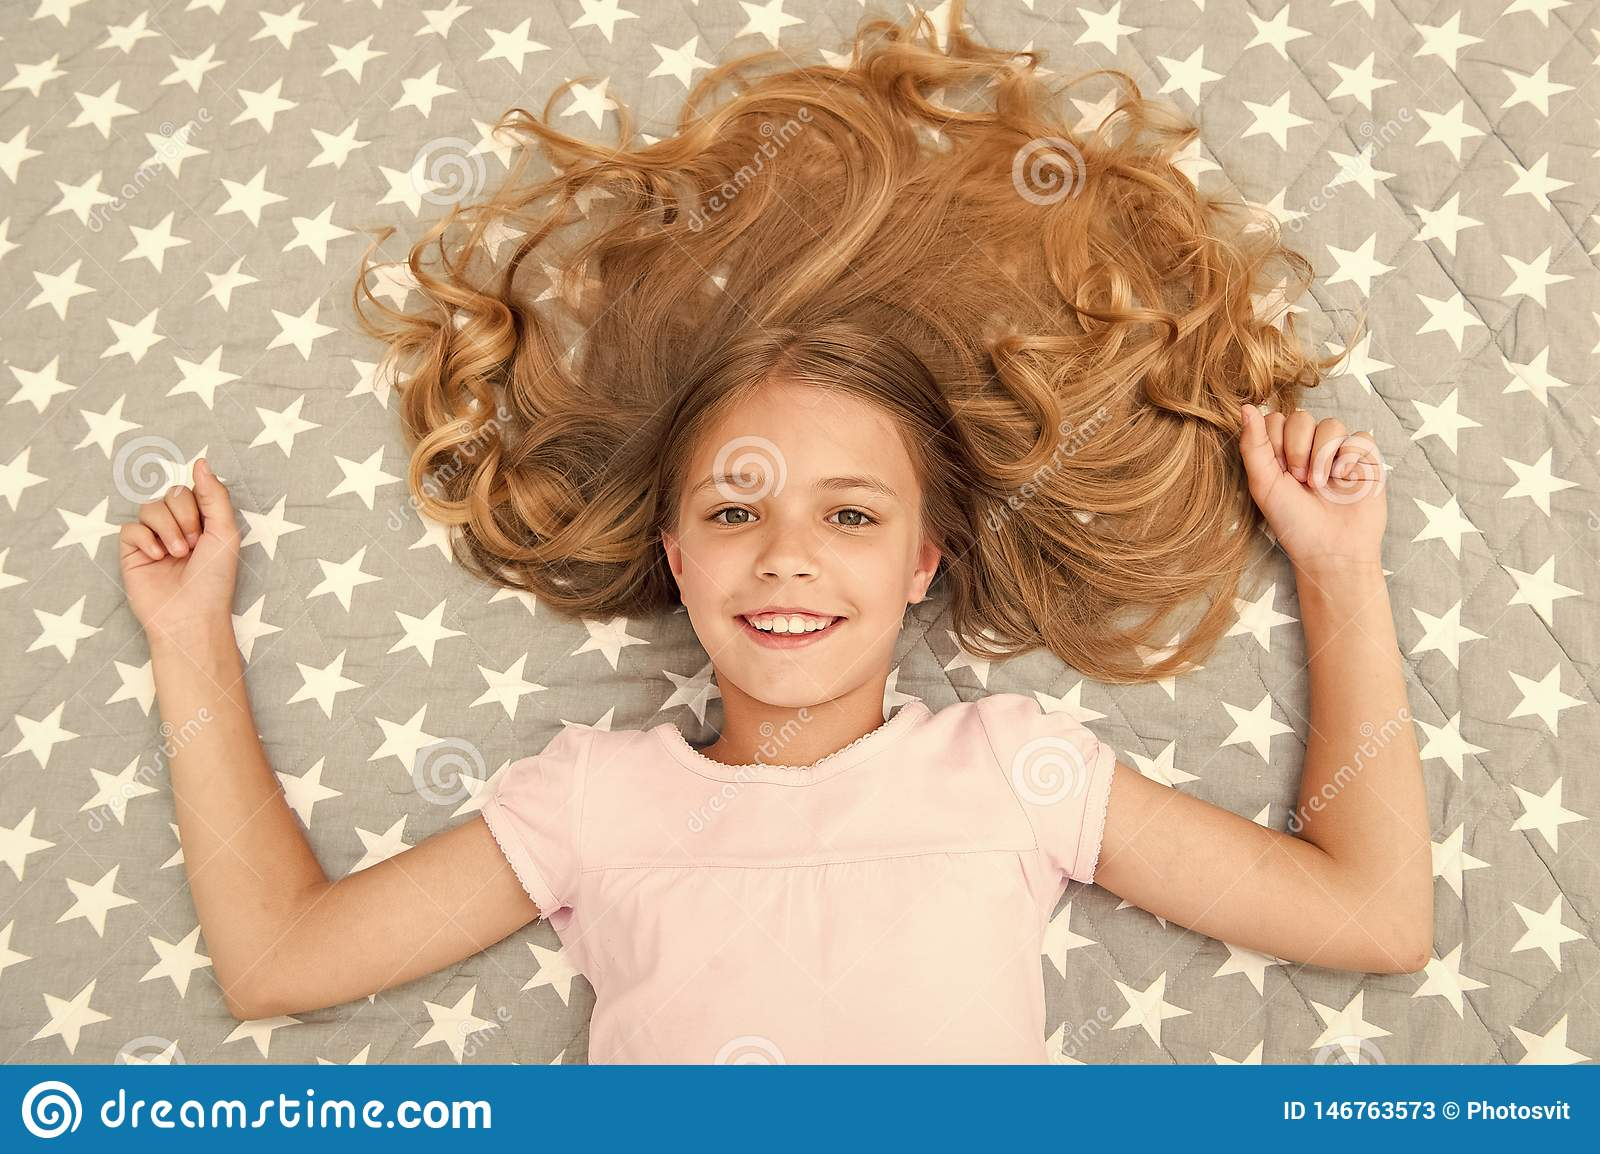 Natural Curls Treat And Care Girl Child With Long Curly Hair Lay